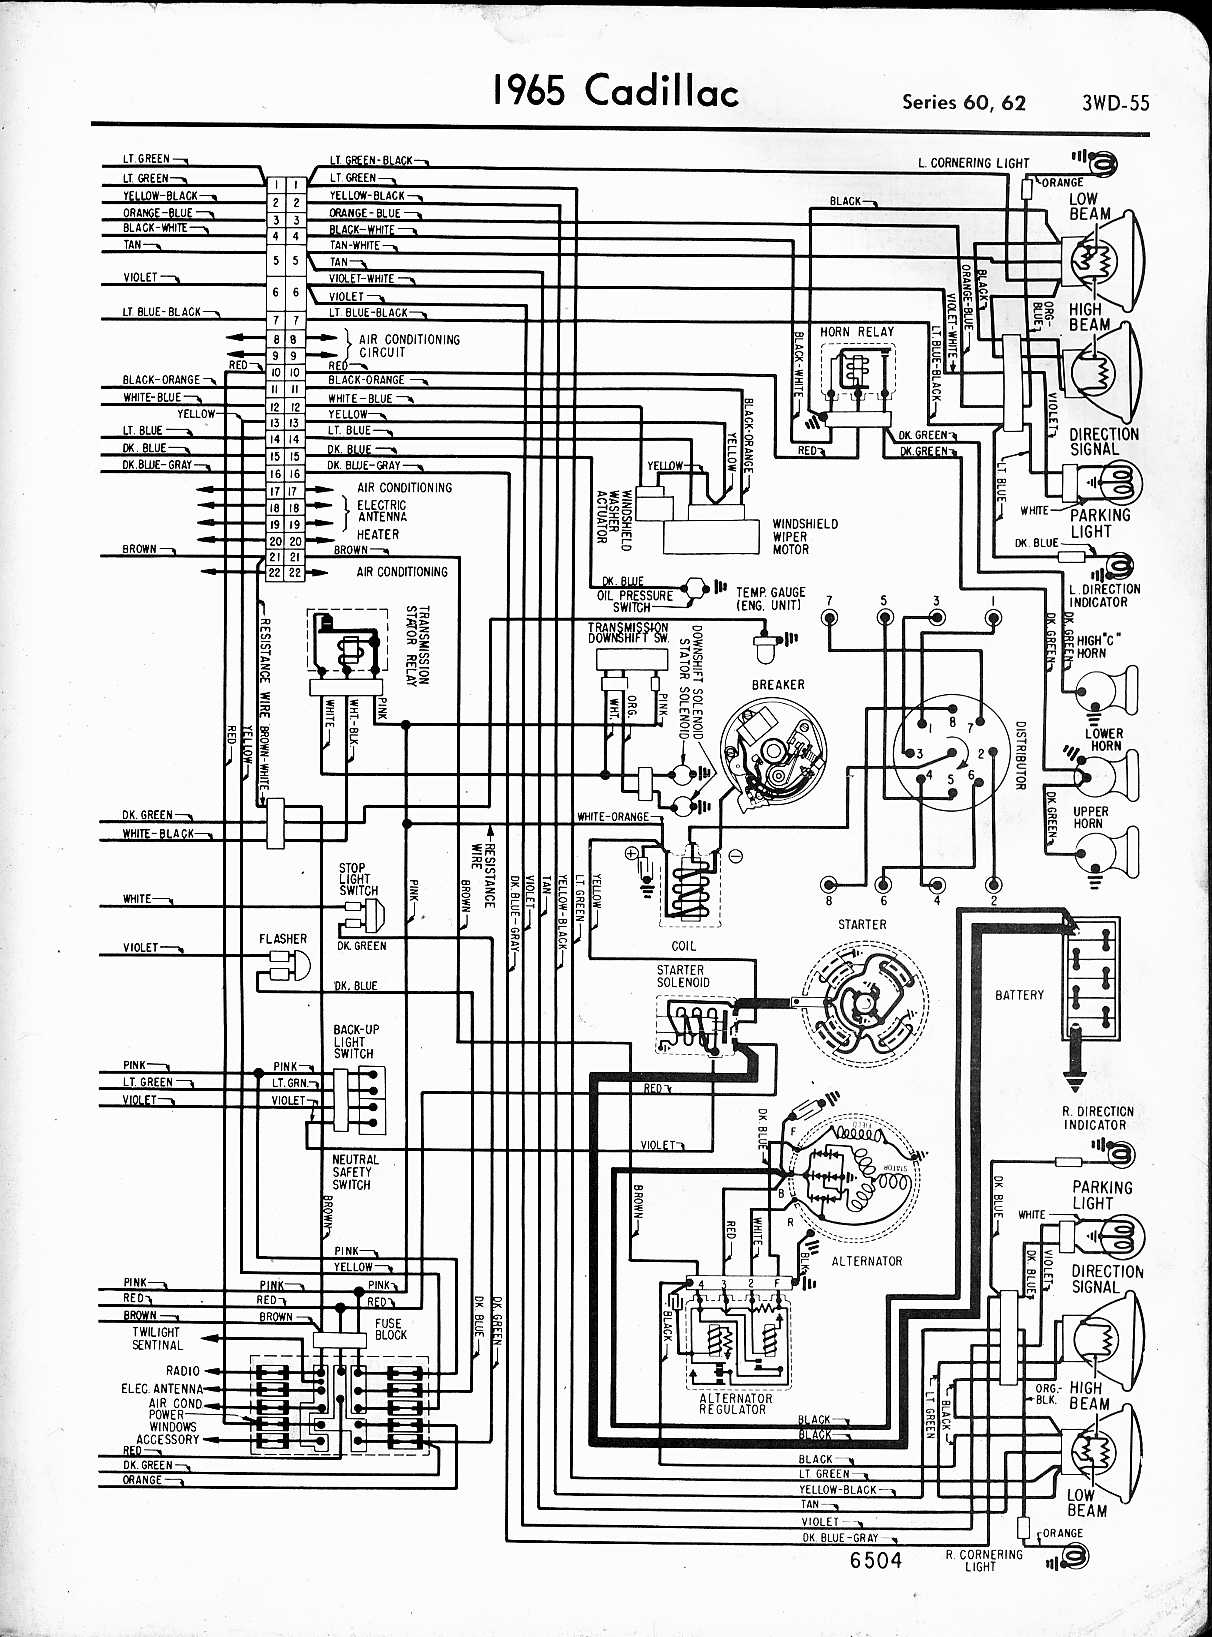 66 cadillac wiring diagram wiring diagramStandard Body And Power Wiring Circuit Diagram Of 1966 Cadillac 68169 Model #3